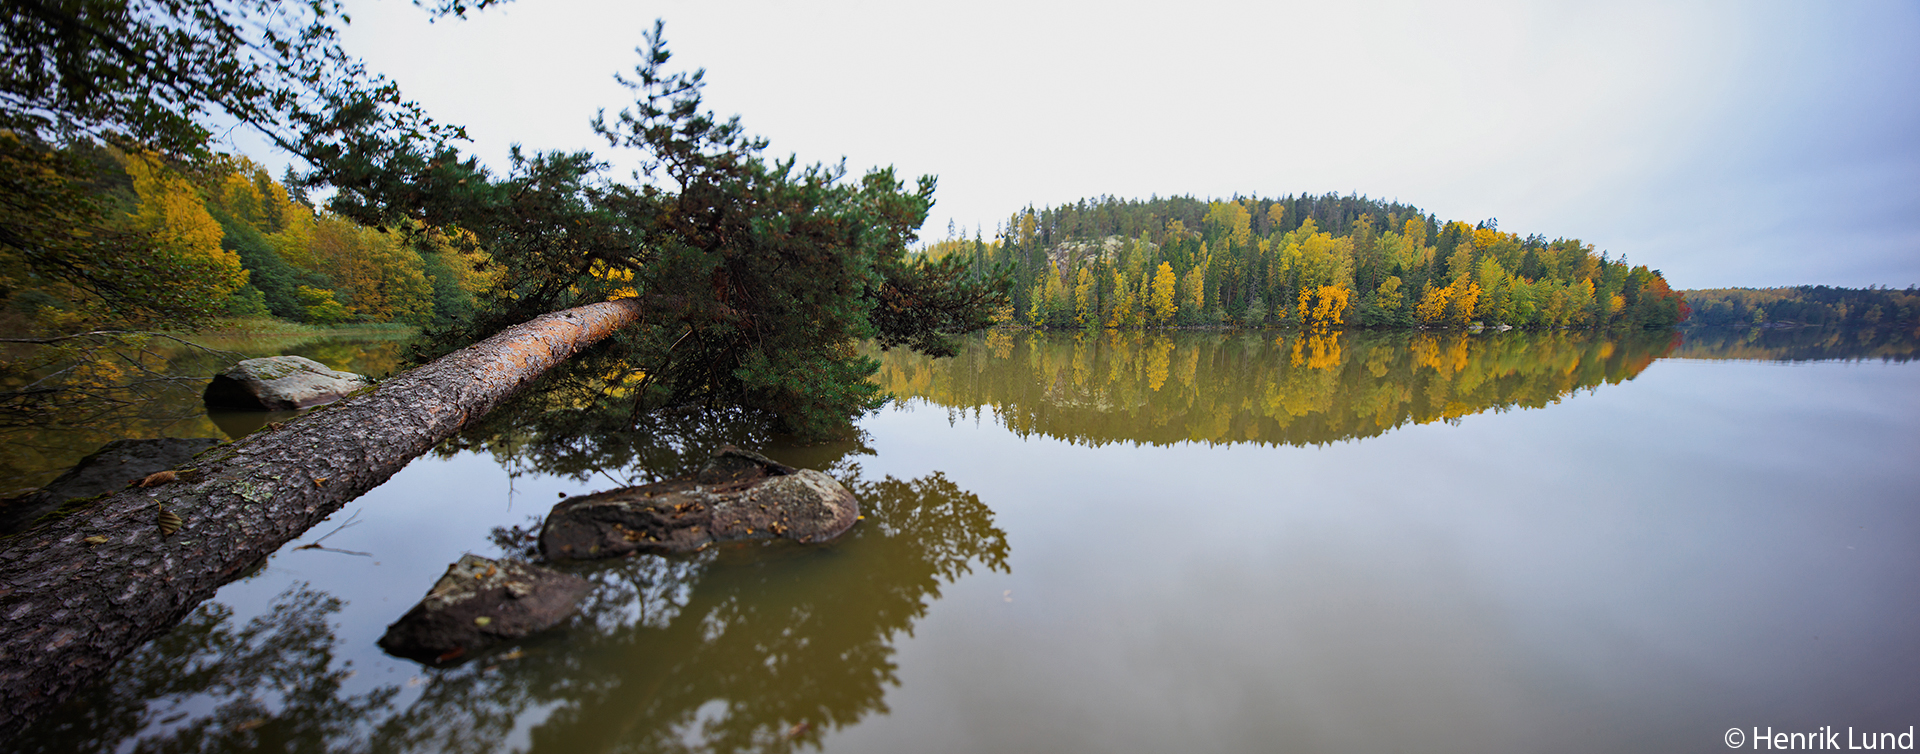 TS-E panorama at Kirkkojärvi in Myrskylä, Finland. September 2017.